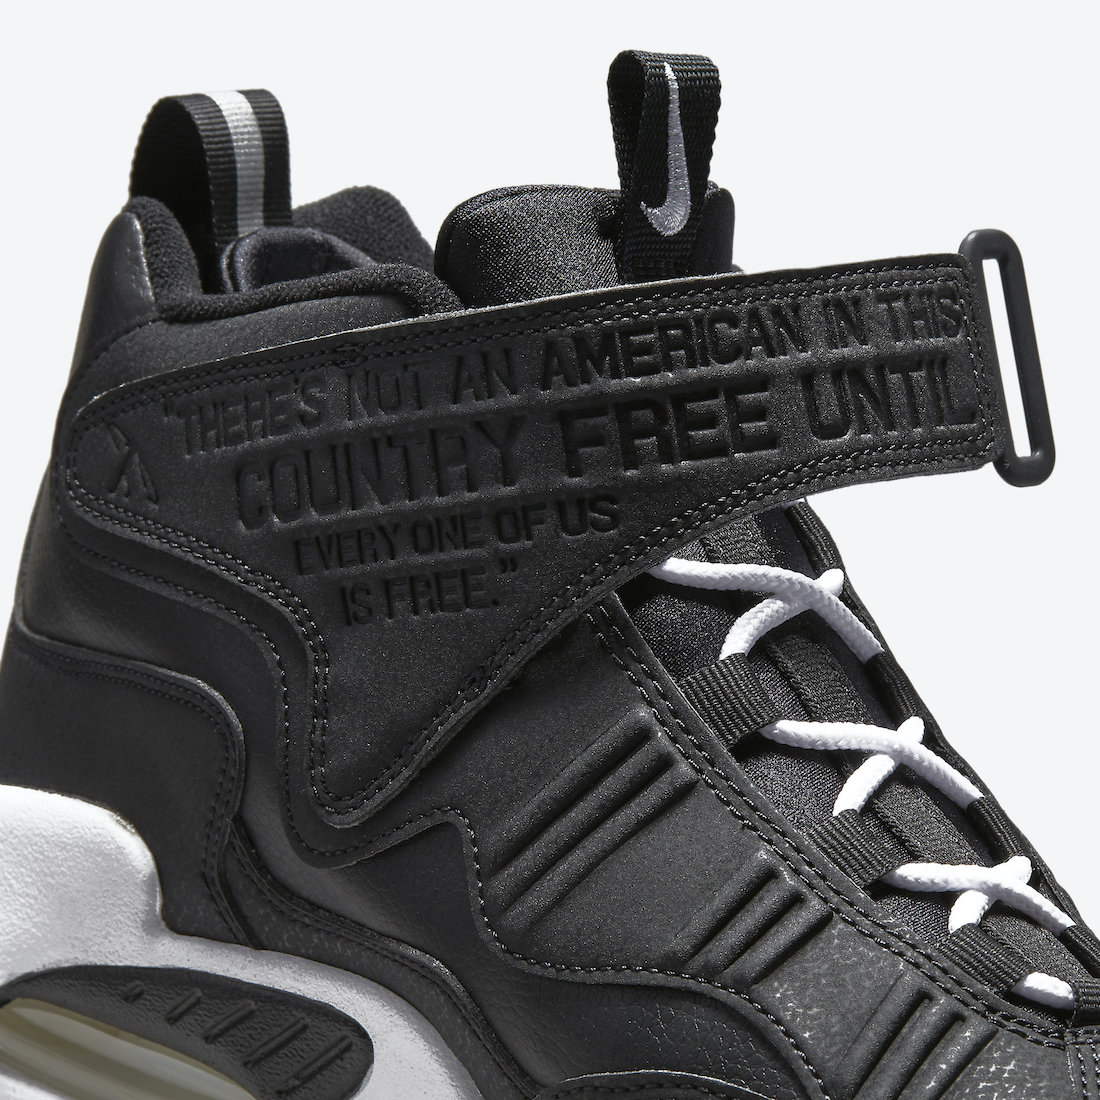 Nike-Air-Griffey-Max-1-Jackie-Robinson-DM0044-001-Release-Date-11